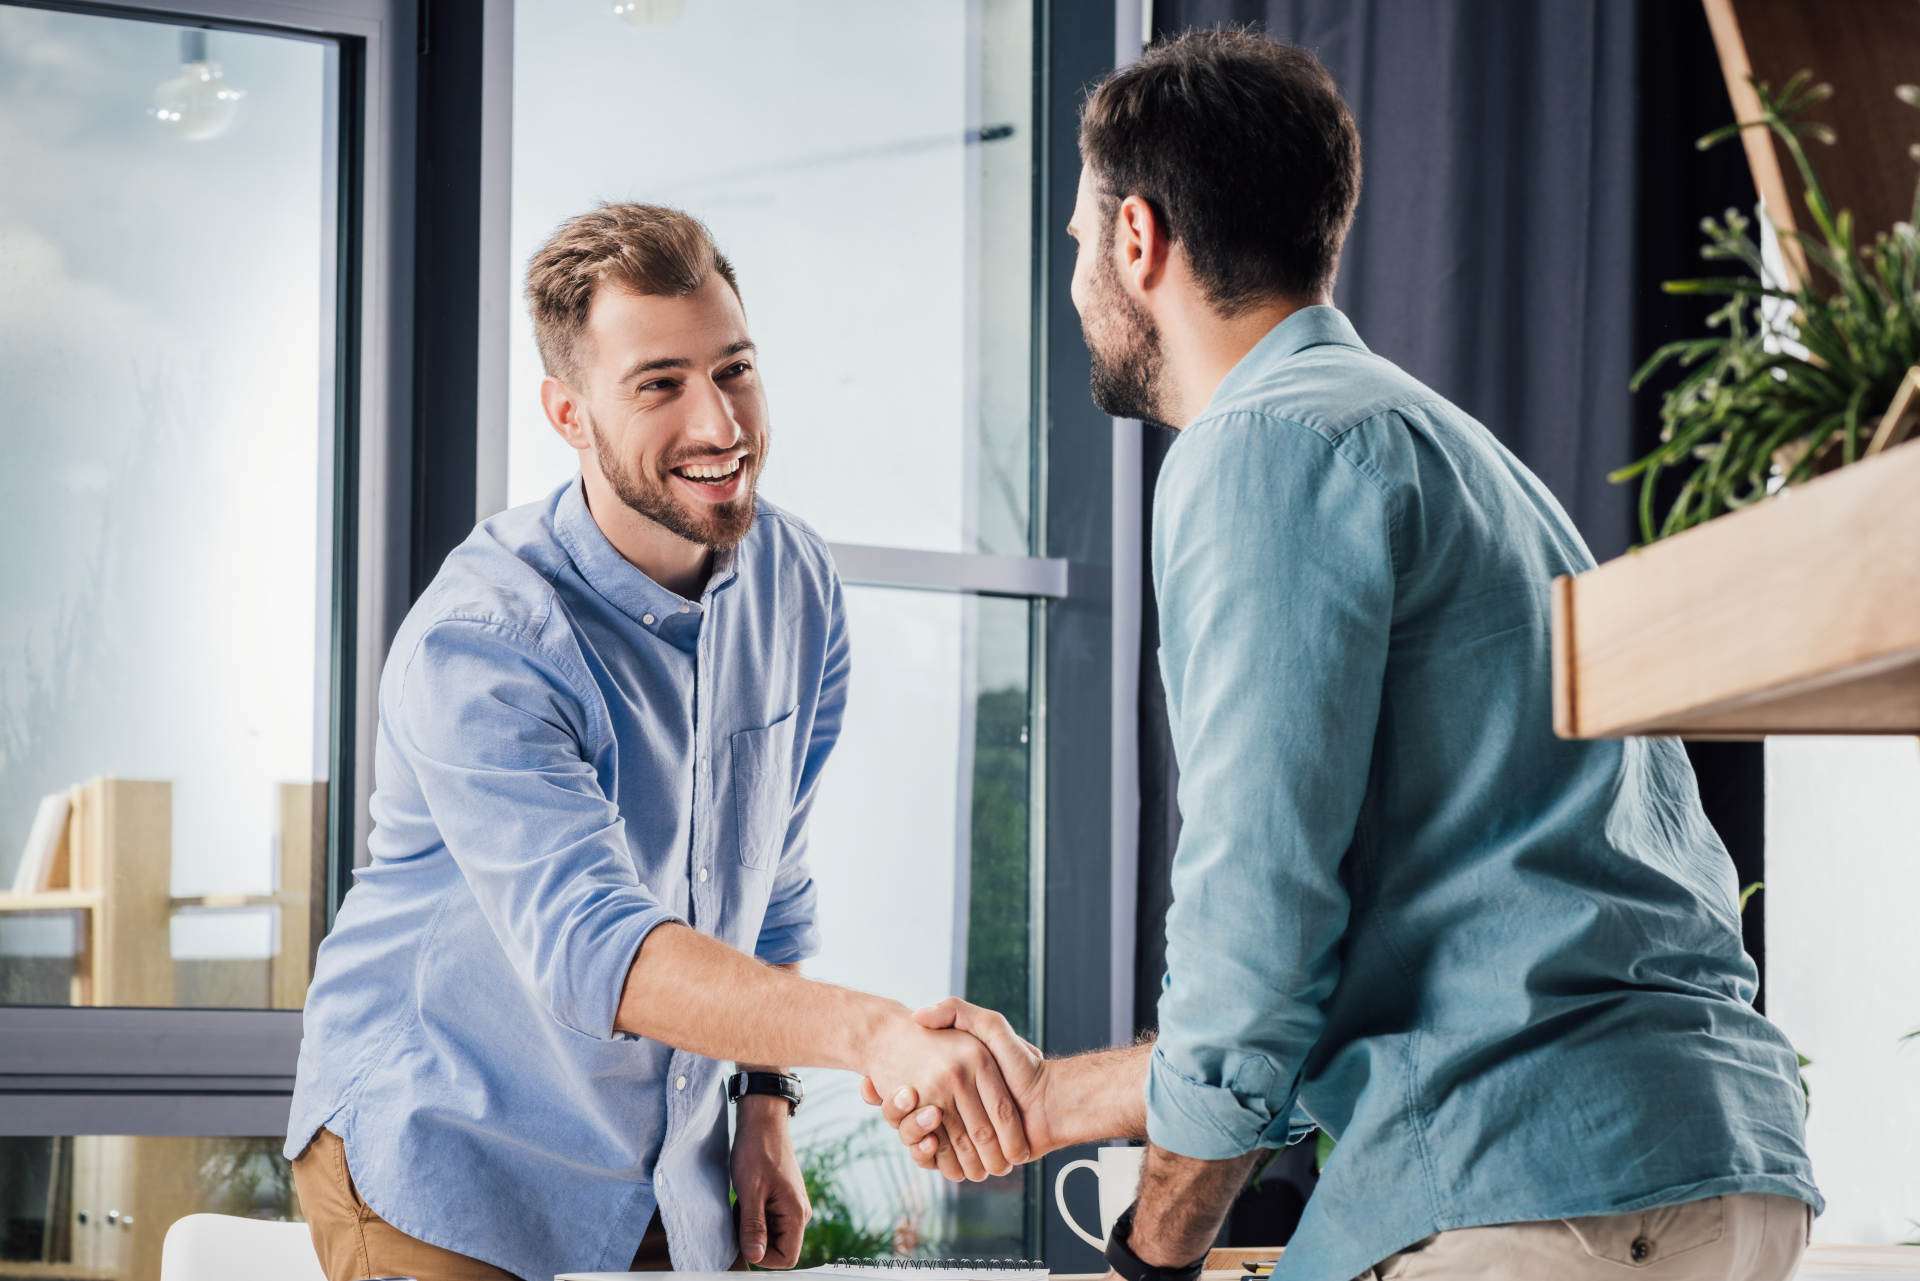 How to Hire the Best Salesperson